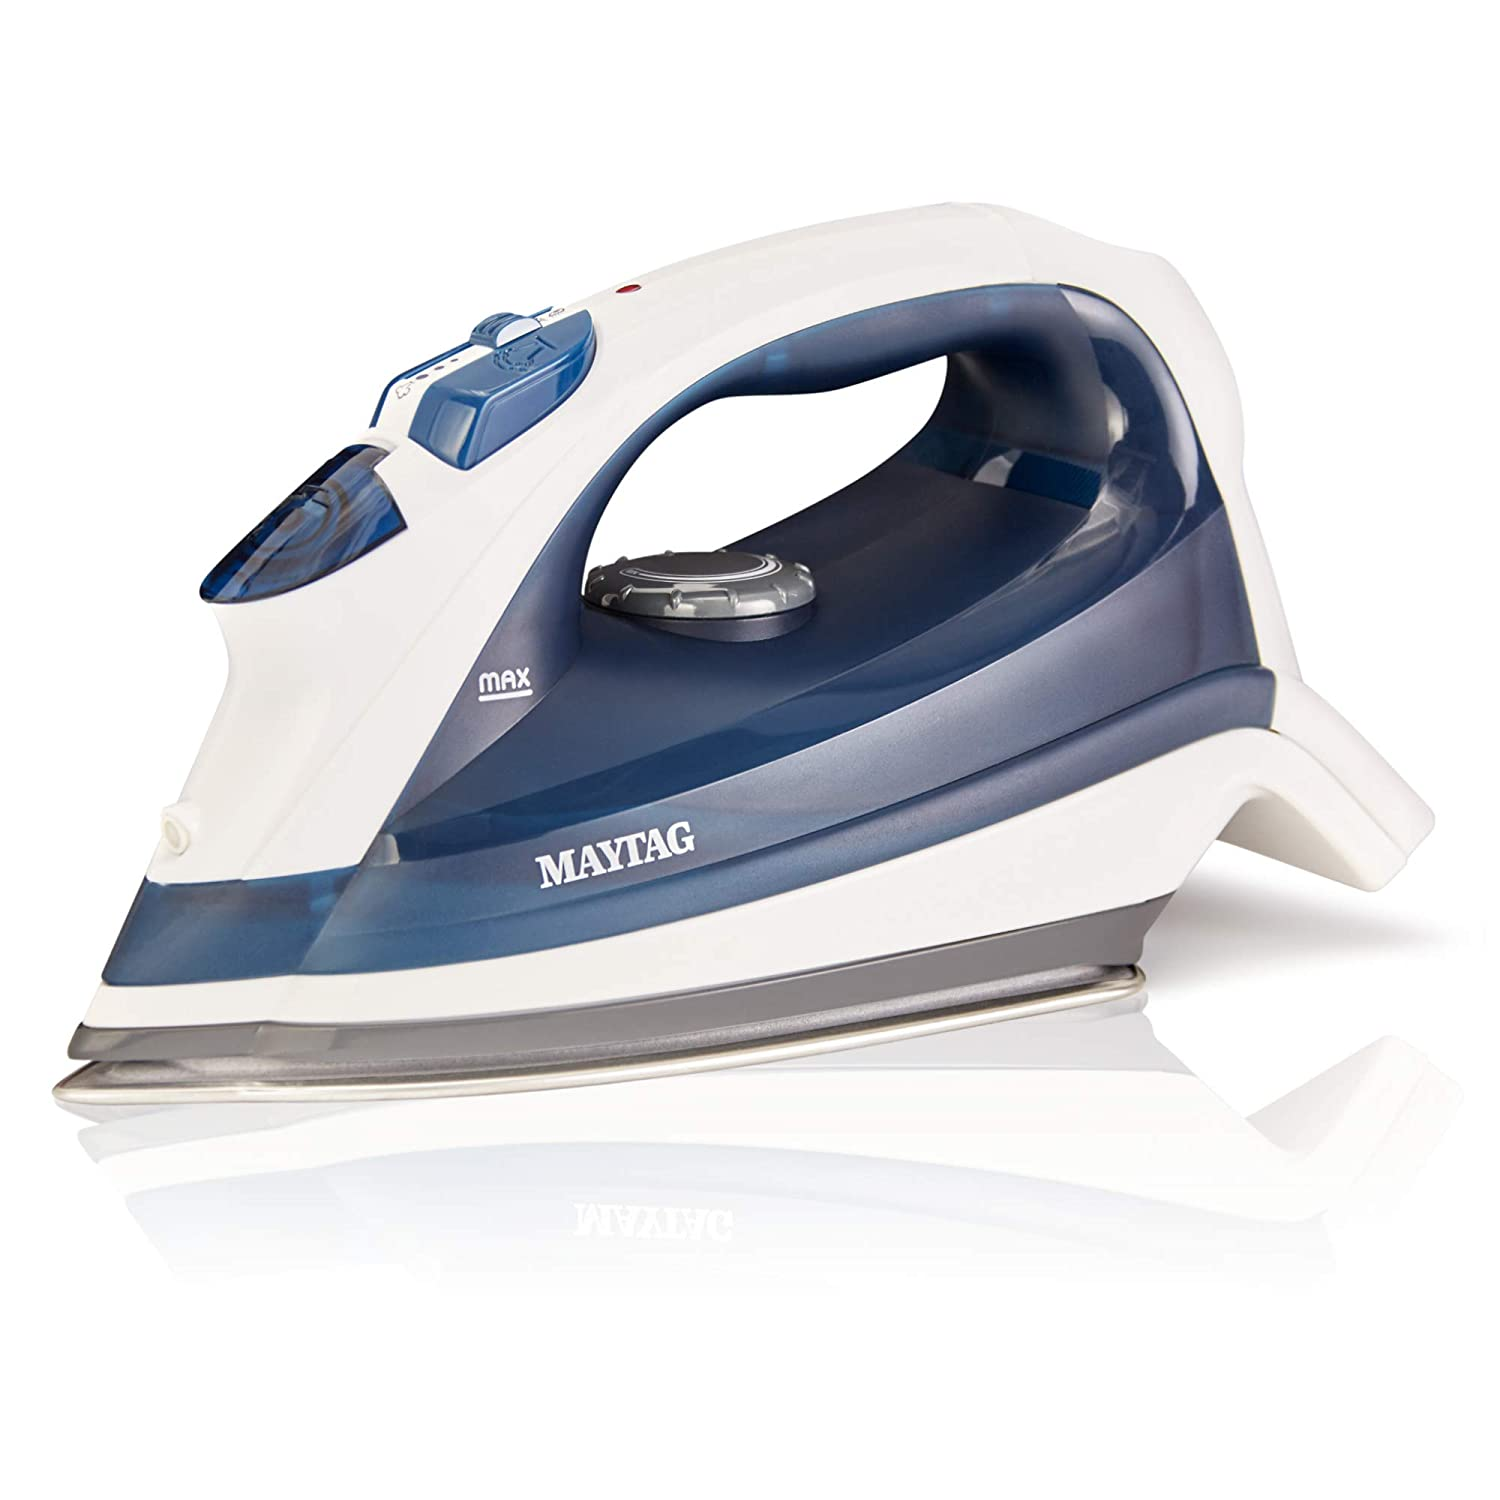 Maytag Speed Heat Steam Iron & Vertical Steamer with Stainless Steel Sole Plate, Self Cleaning Function + Thermostat Dial M200 Blue